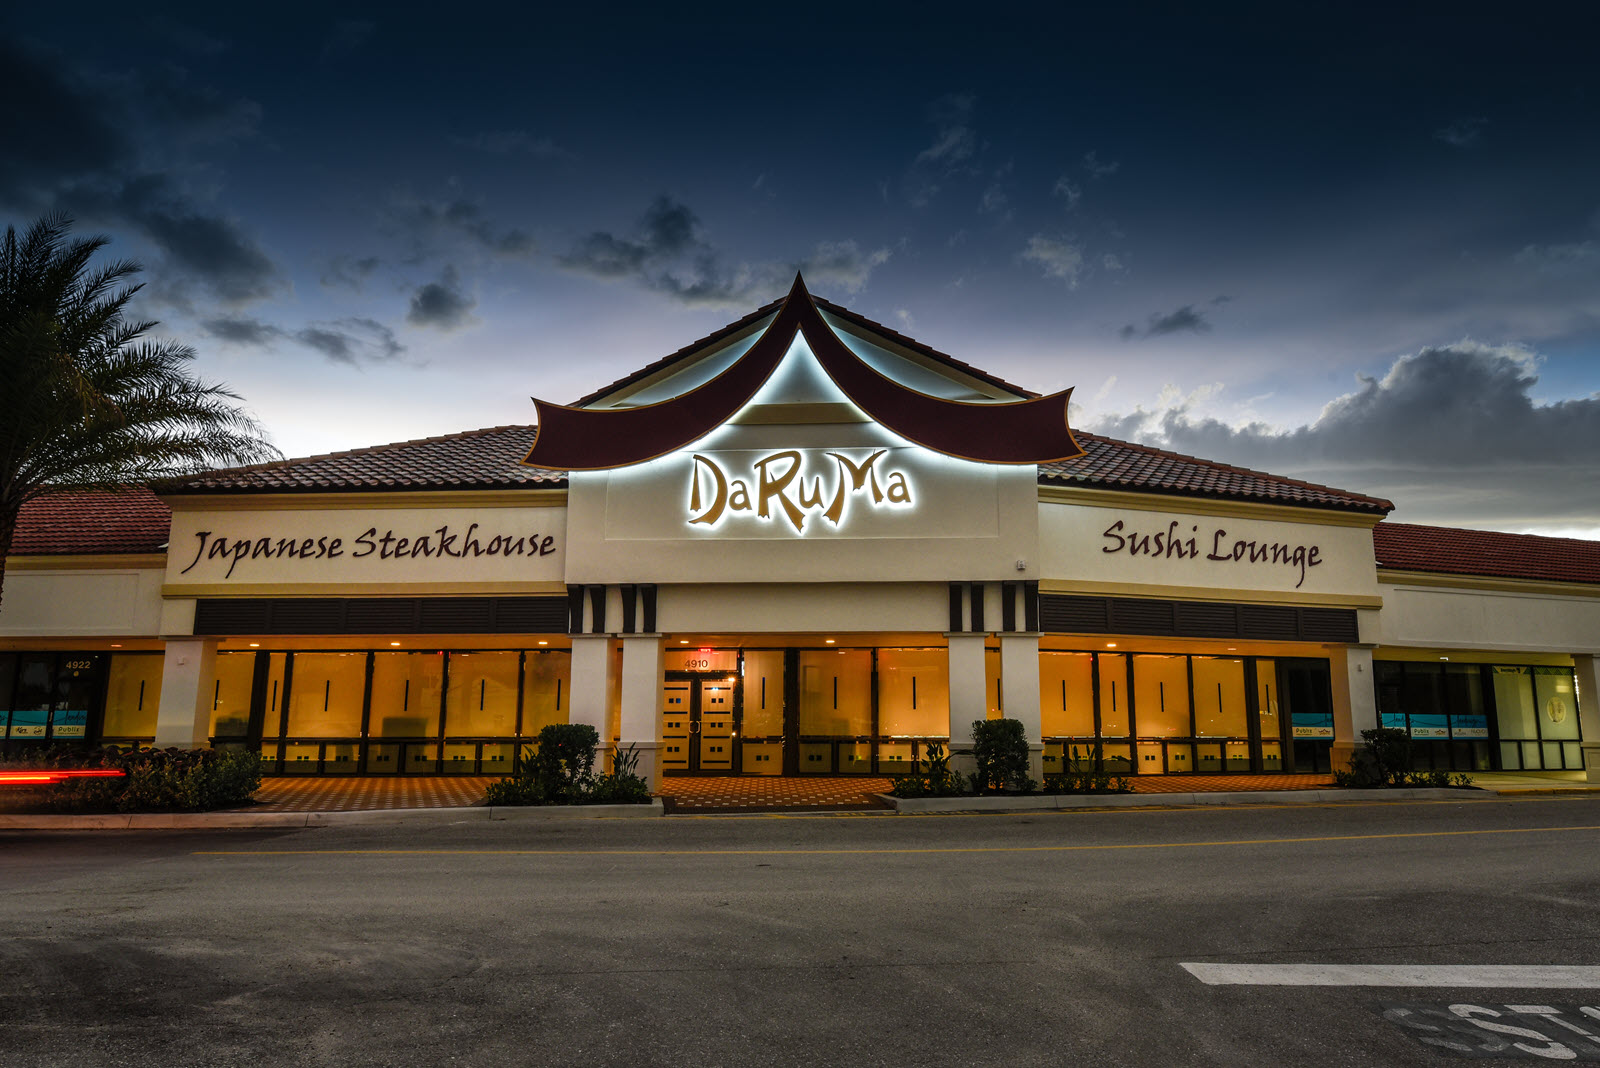 DaRuMa Japanese Steakhouse - Atlas Building Company